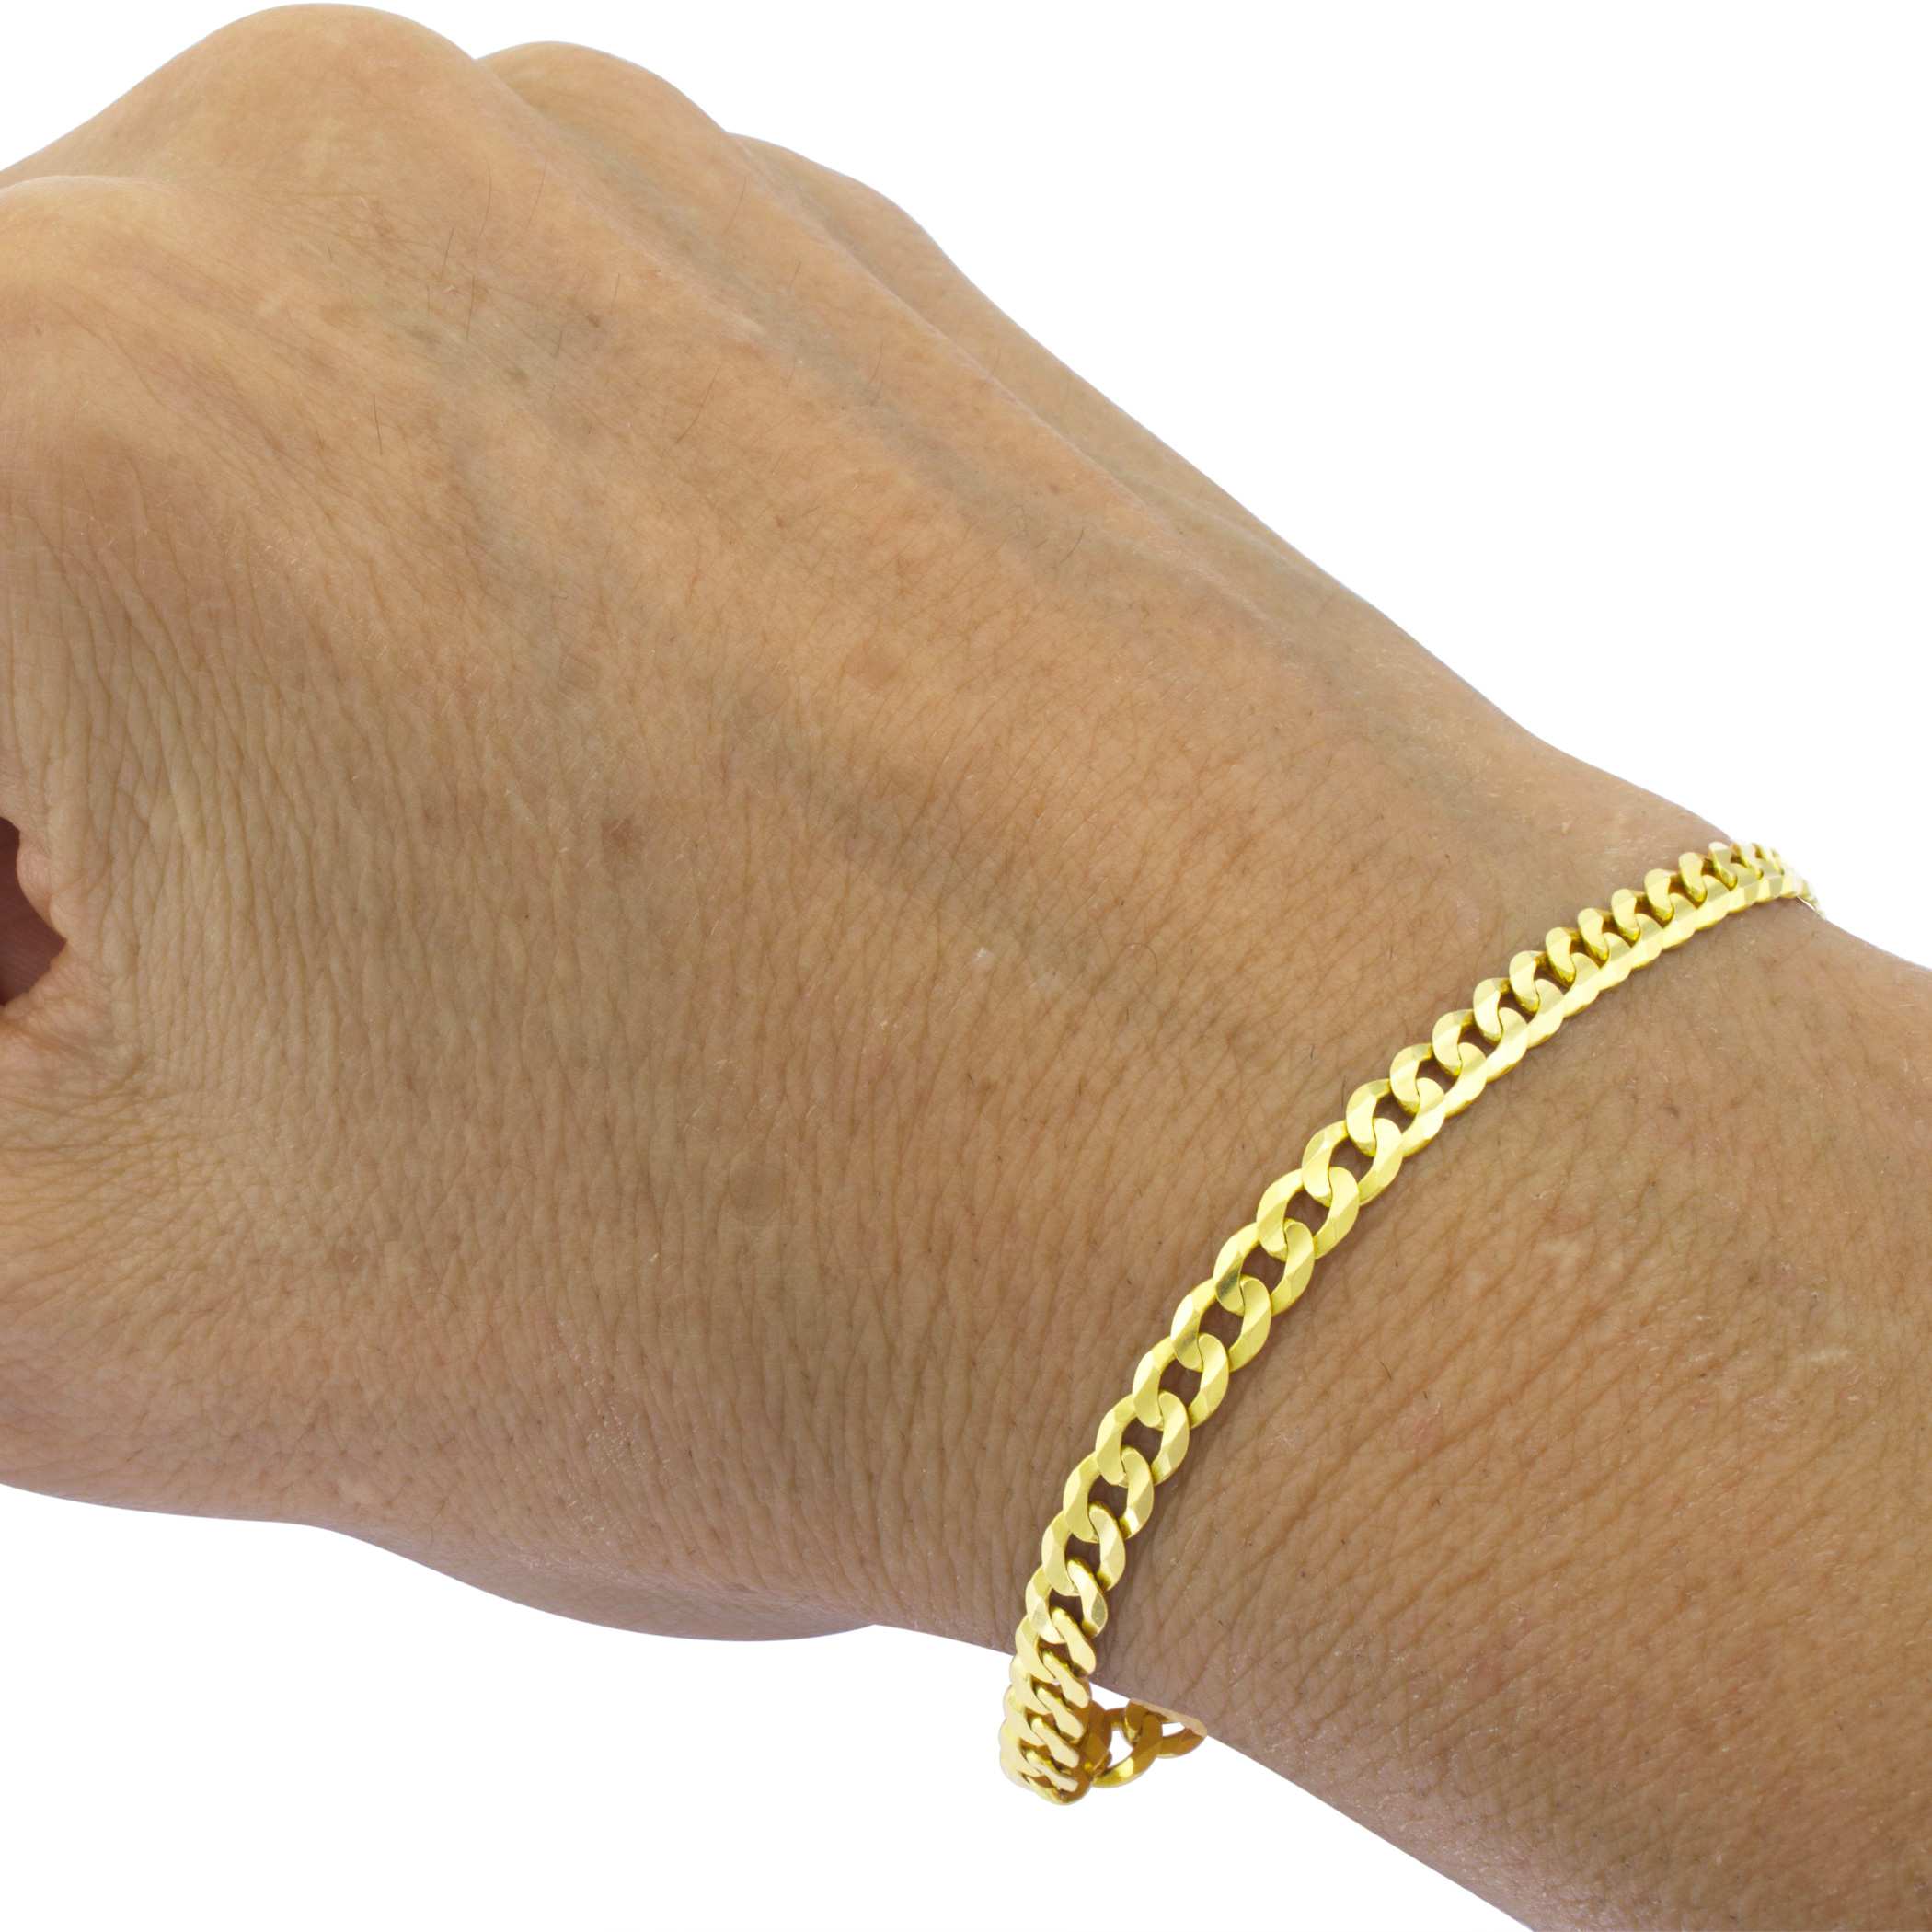 Real-14K-Yellow-Gold-4-5mm-Cuban-Curb-Chain-Link-Bracelet-Anklet-Chain-7-034-8-034-9-034 thumbnail 14